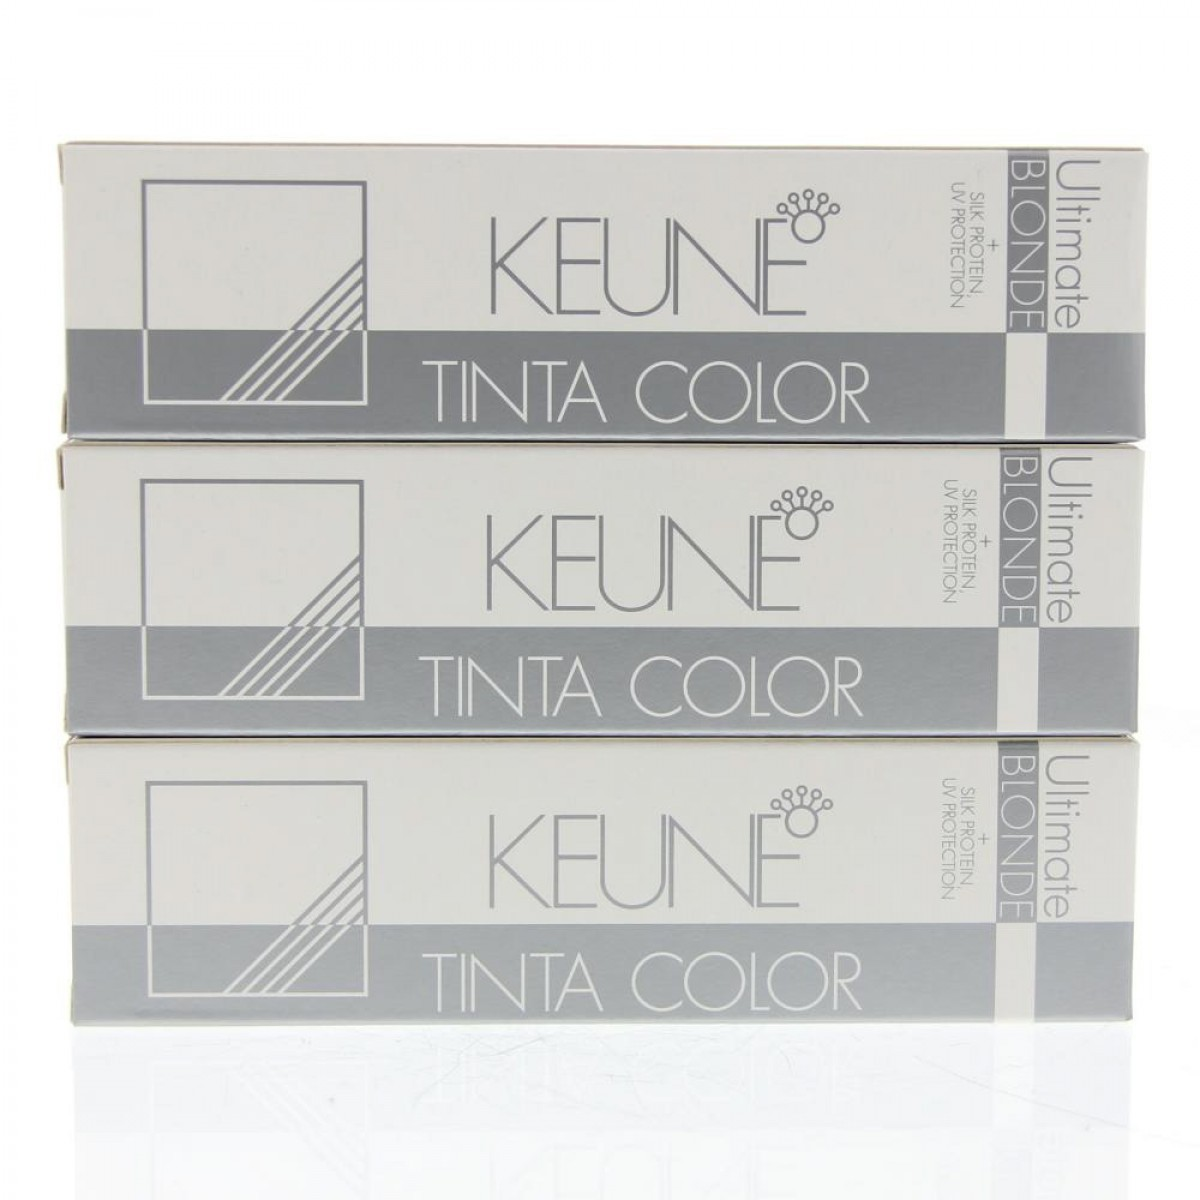 Tinta Color Keune Super Ash Blonde 60ml - Cor 1531 - Louro Super Ambar